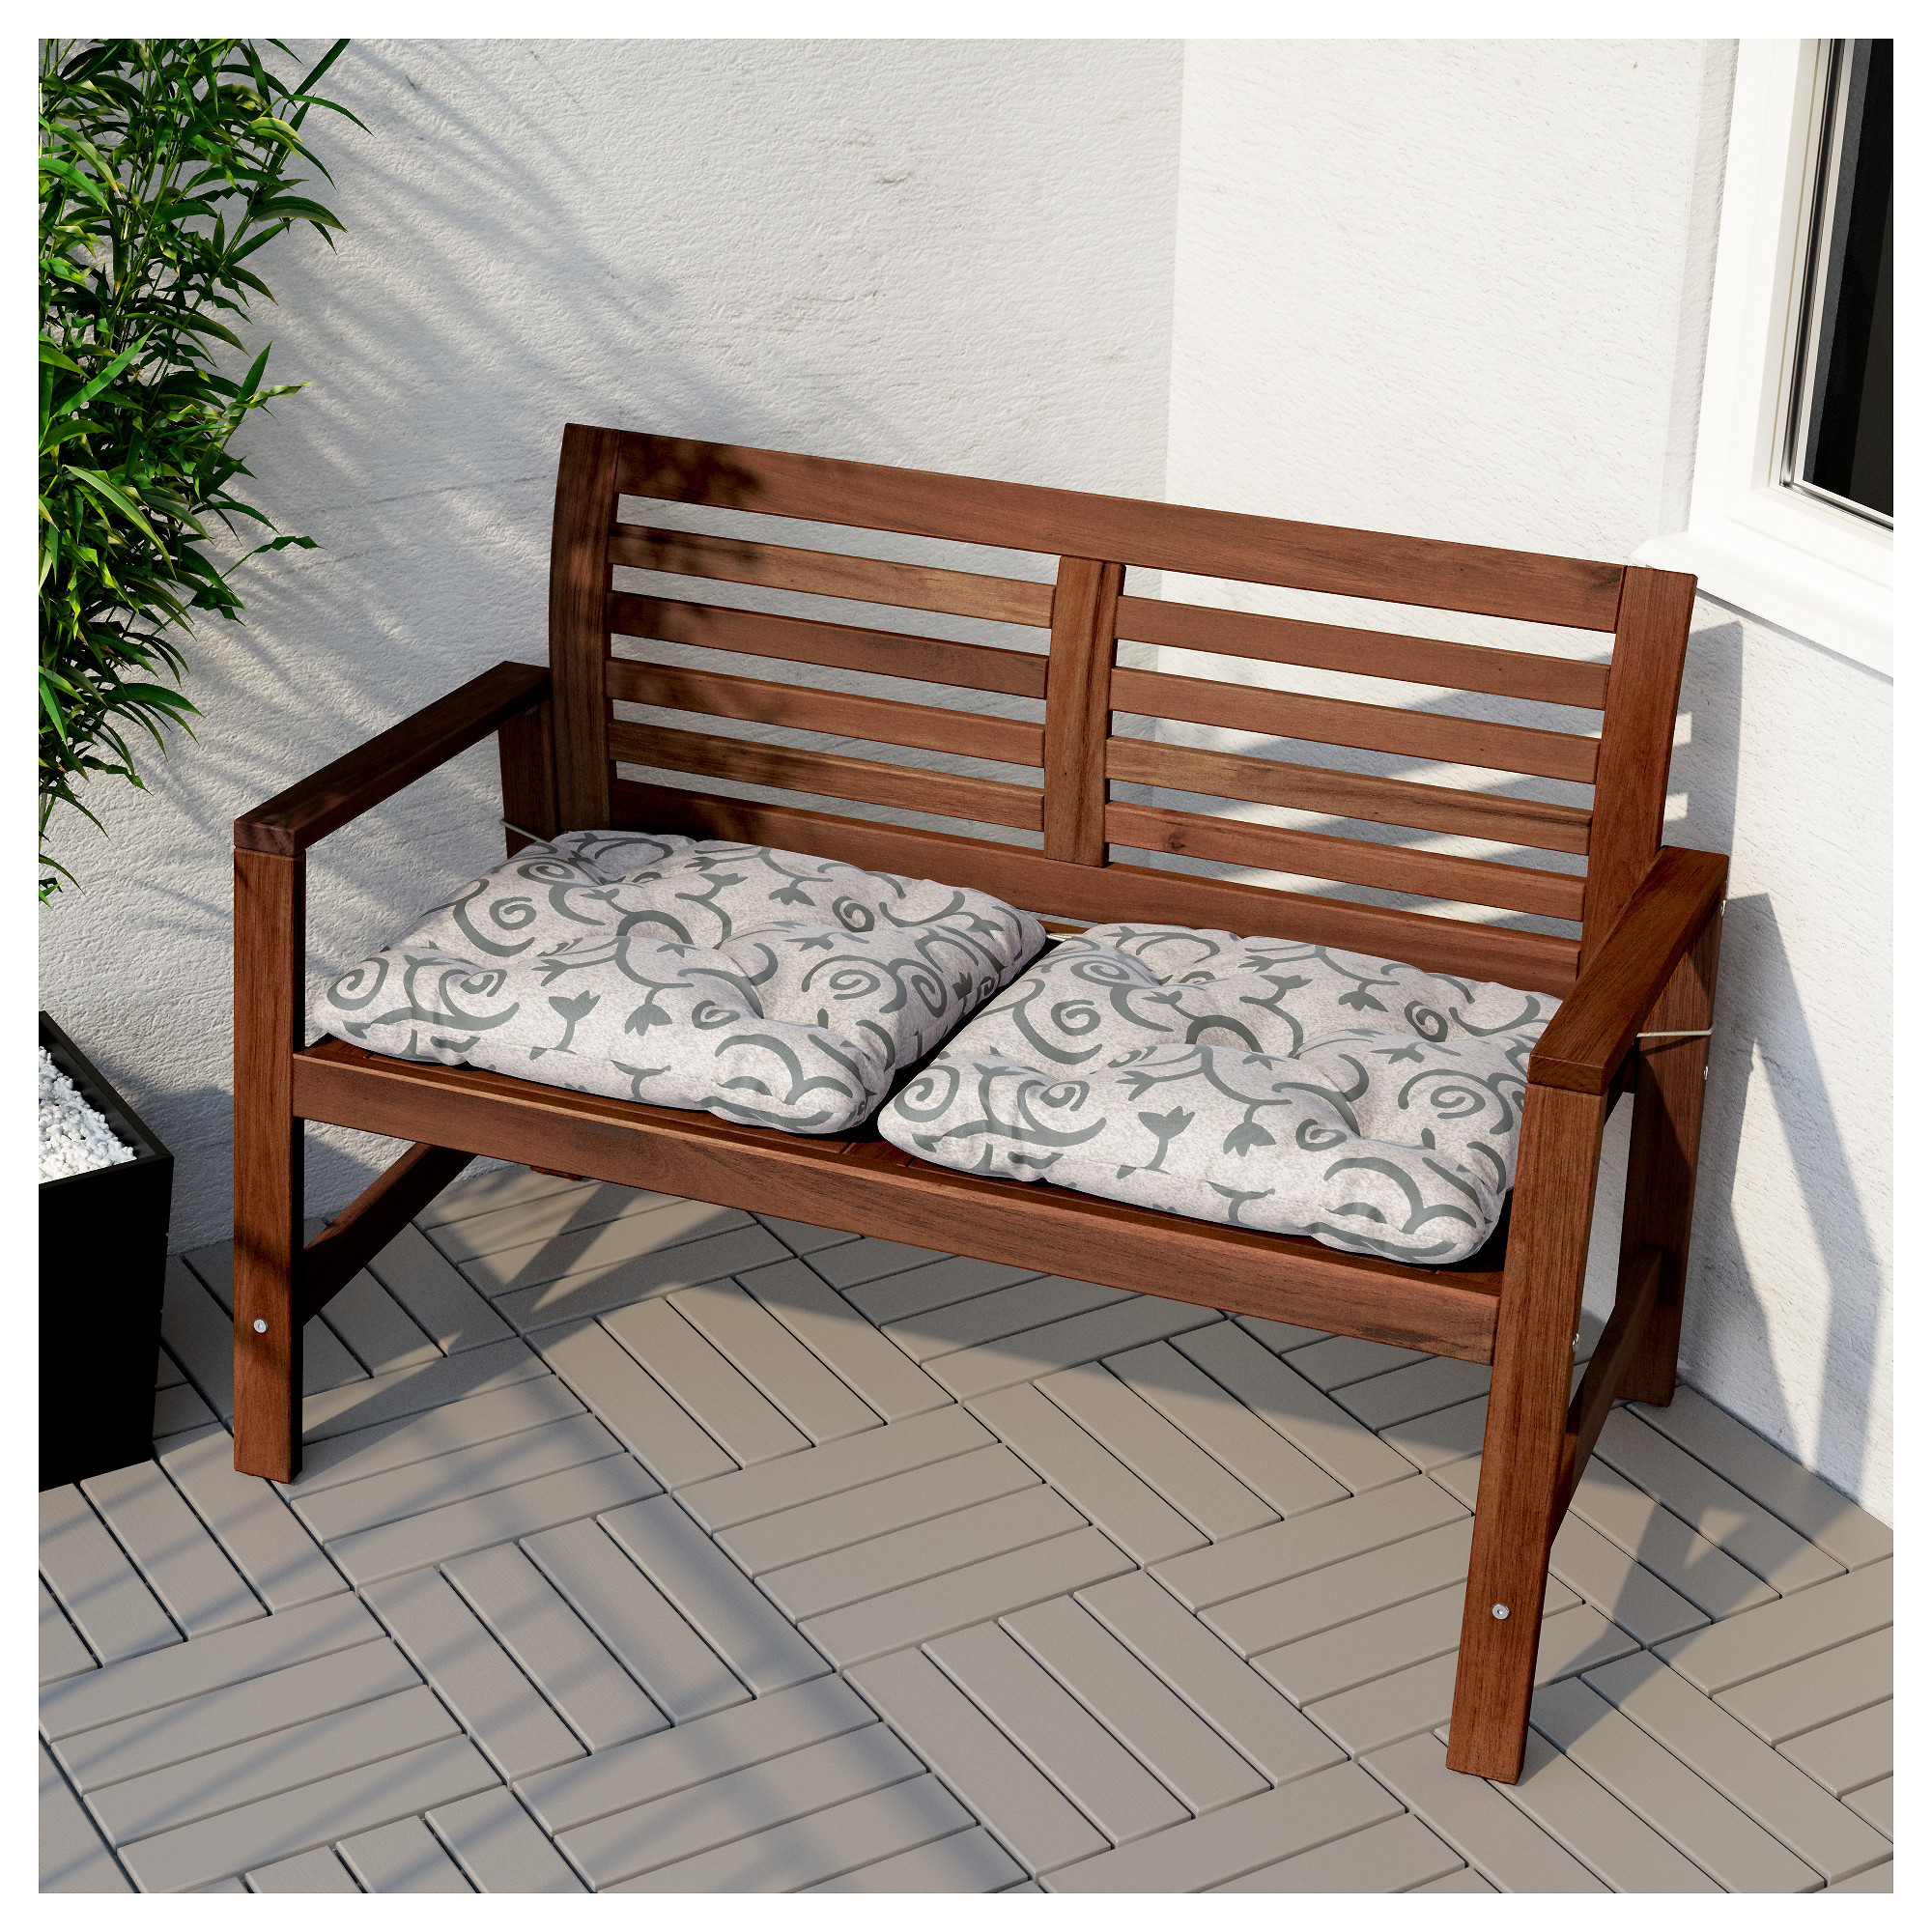 ÄPPLARÖ Bench with backrest, outdoor - brown stained - IKEA